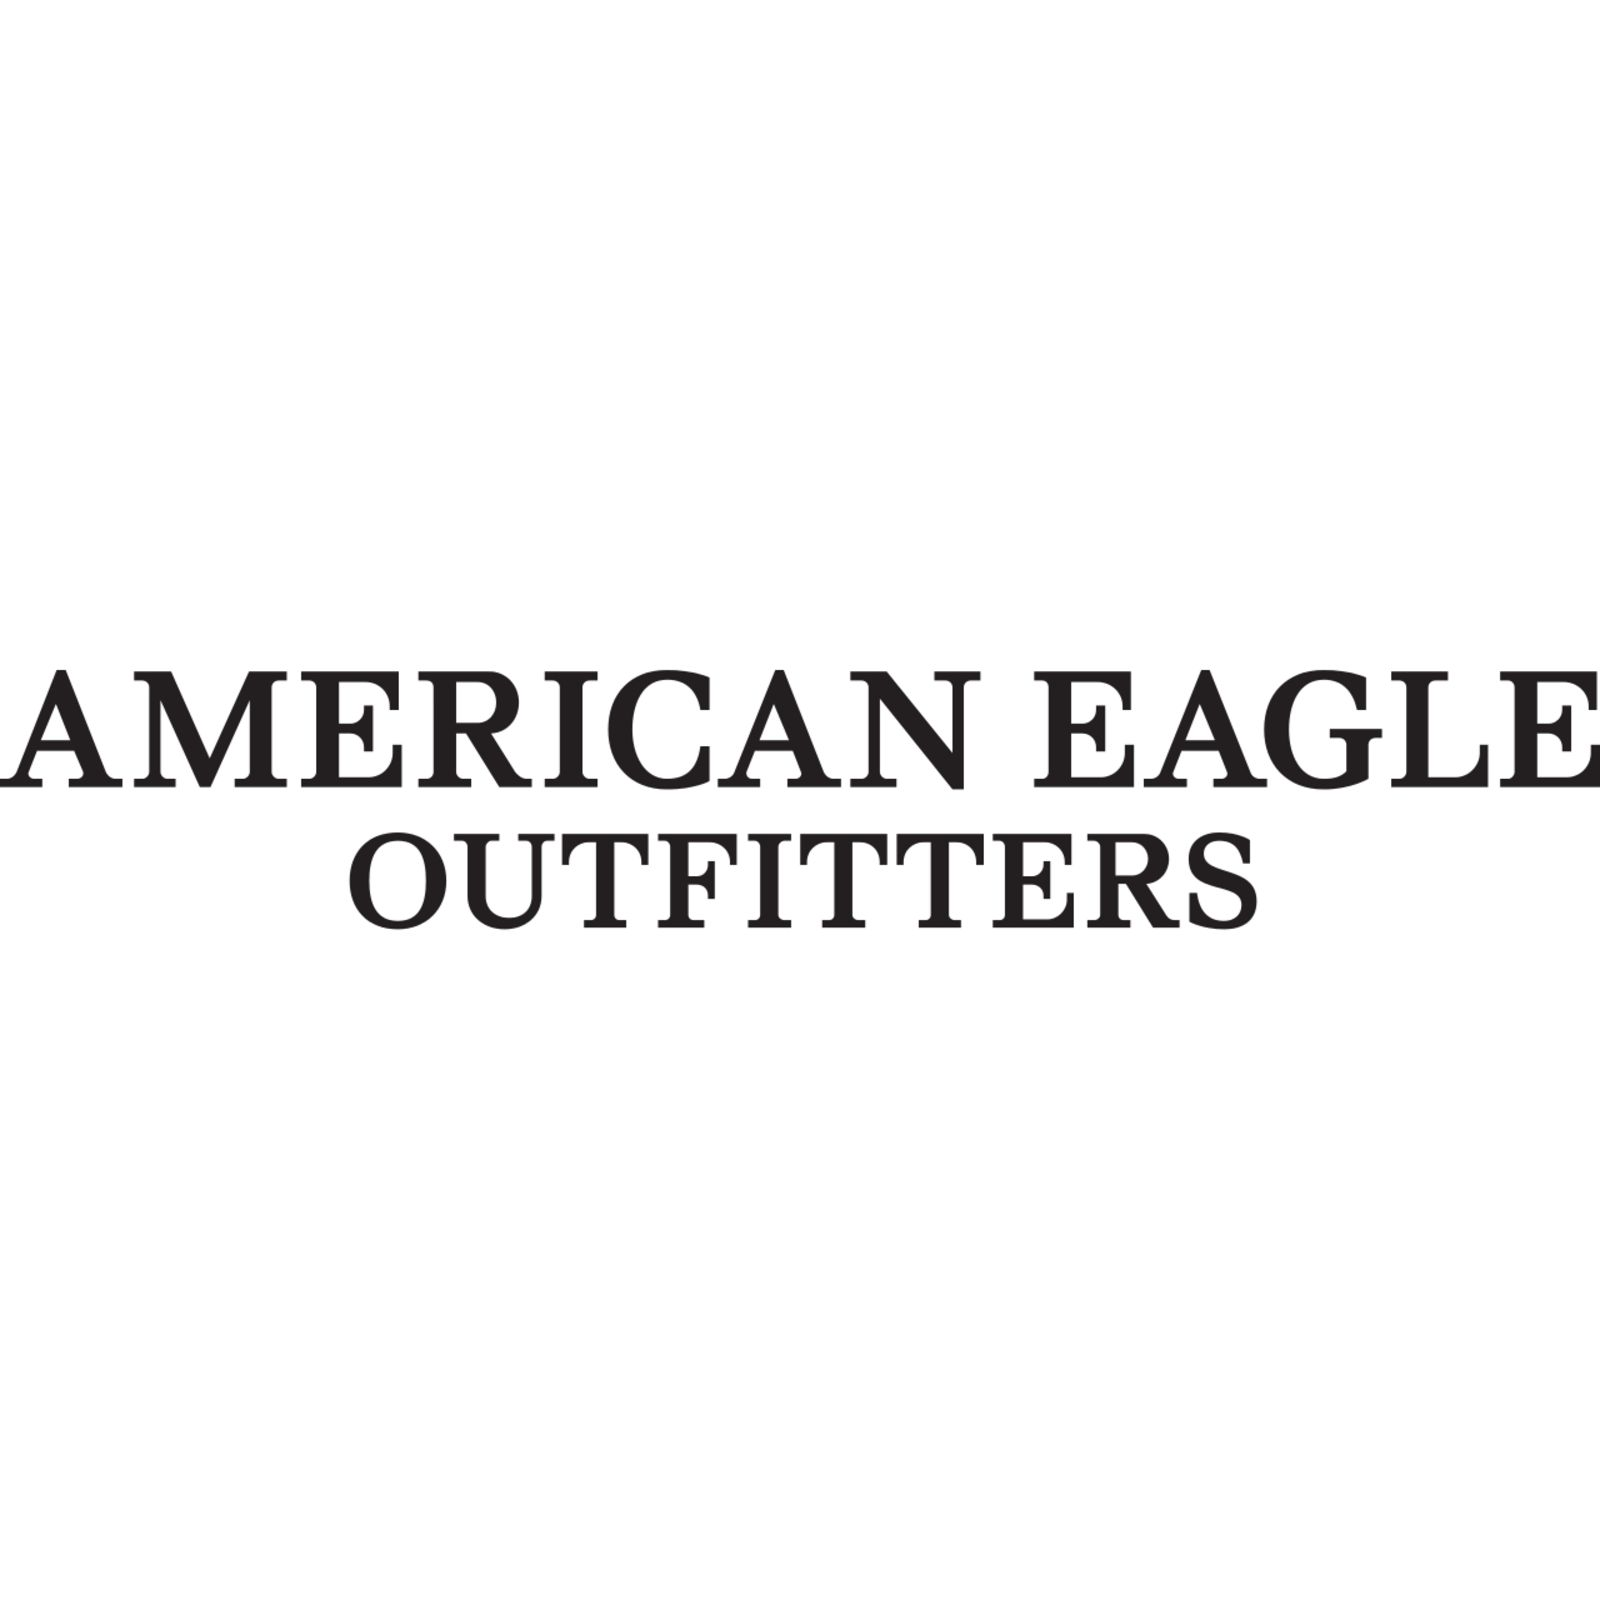 AMERICAN EAGLE OUTFITTERS (Image 1)